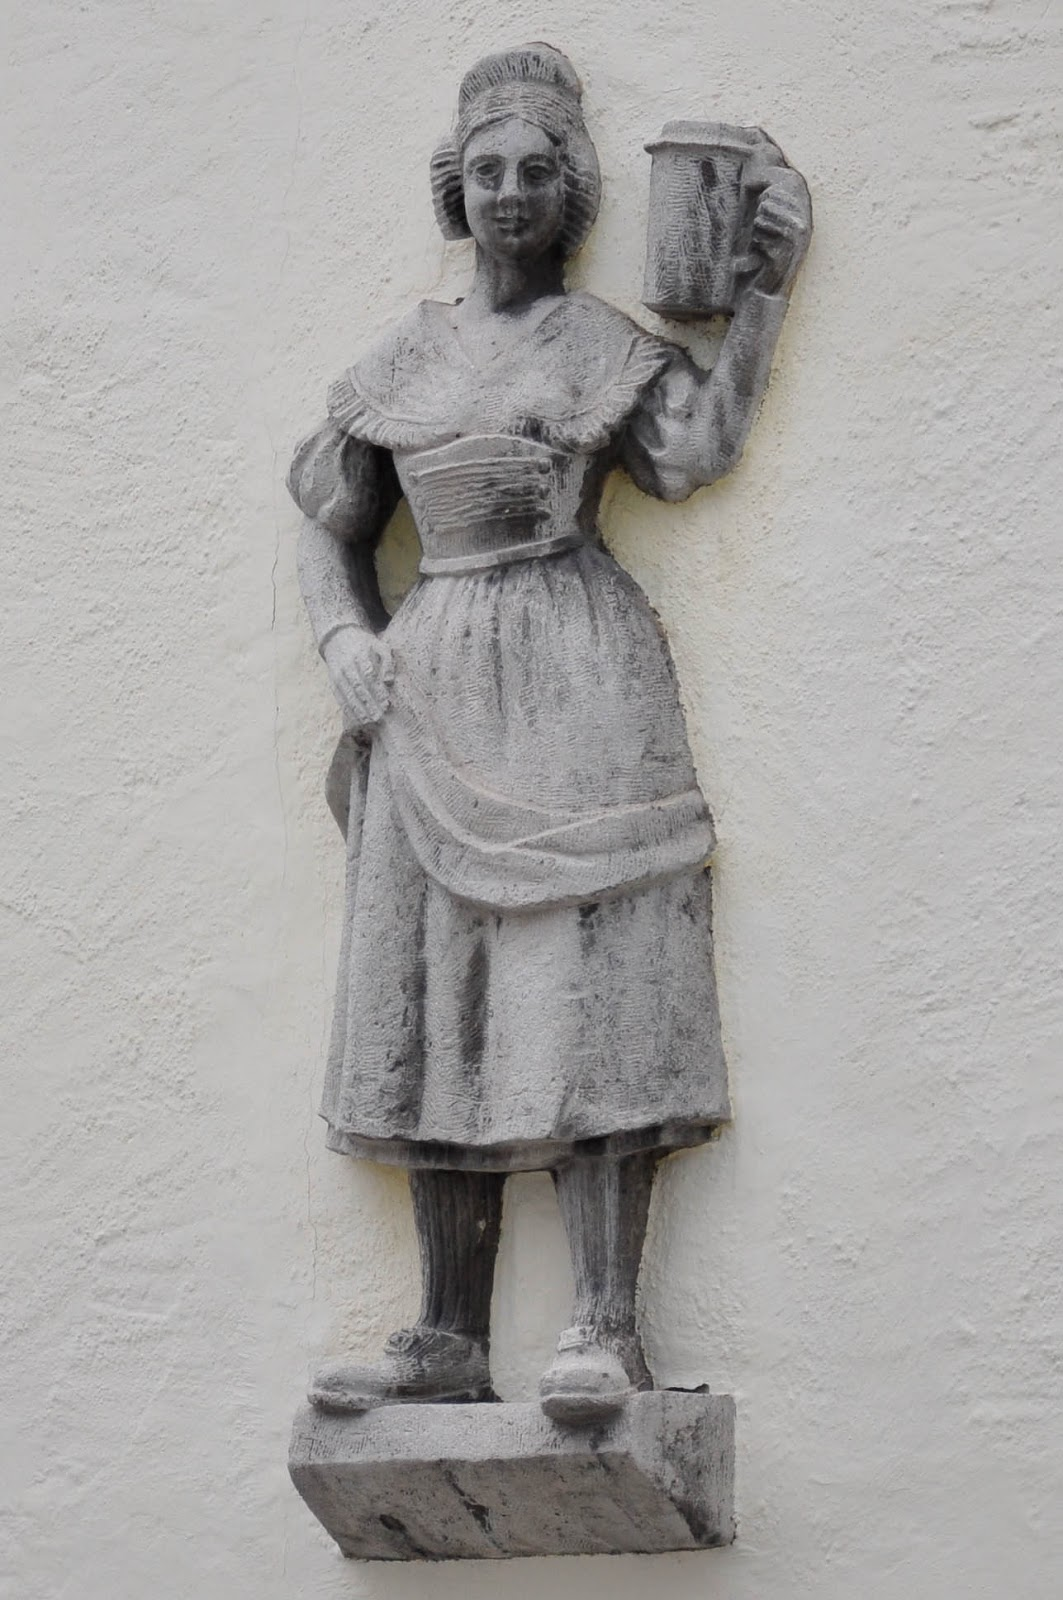 Bas-relief on a house wall, Garmisch-Parternkirchen, Bavaria, Germany